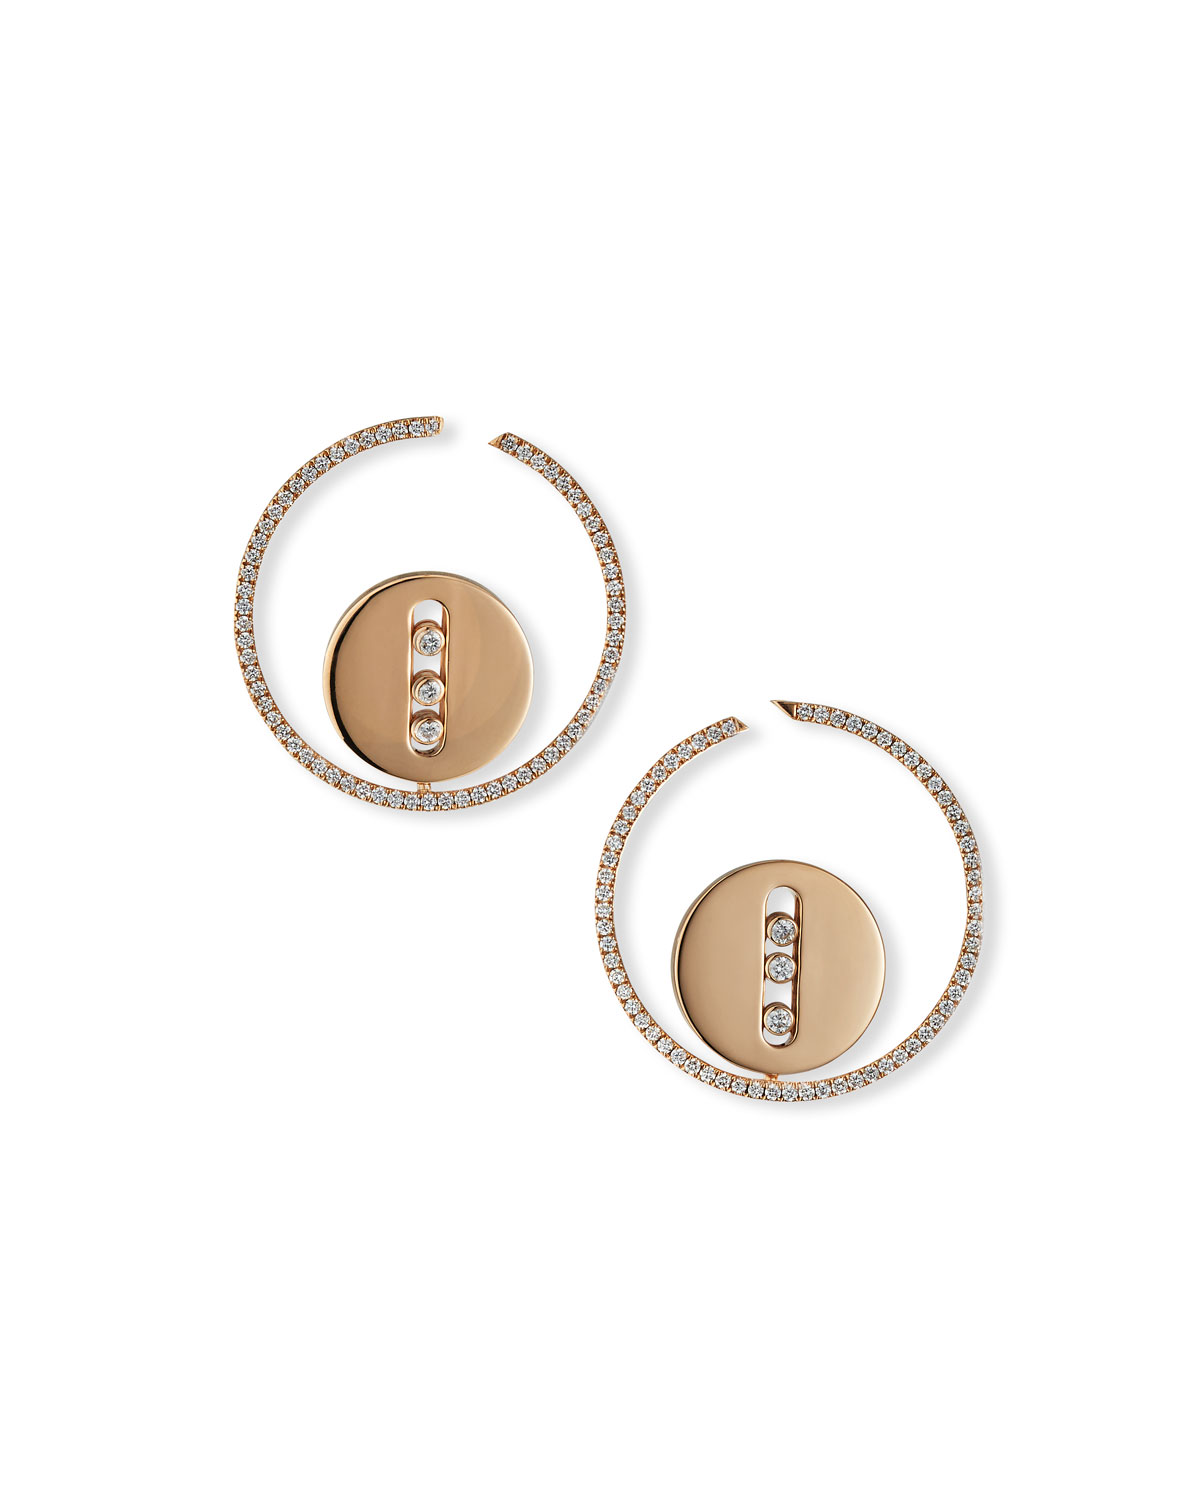 Lucky Move Hoop Earrings in Pink Gold